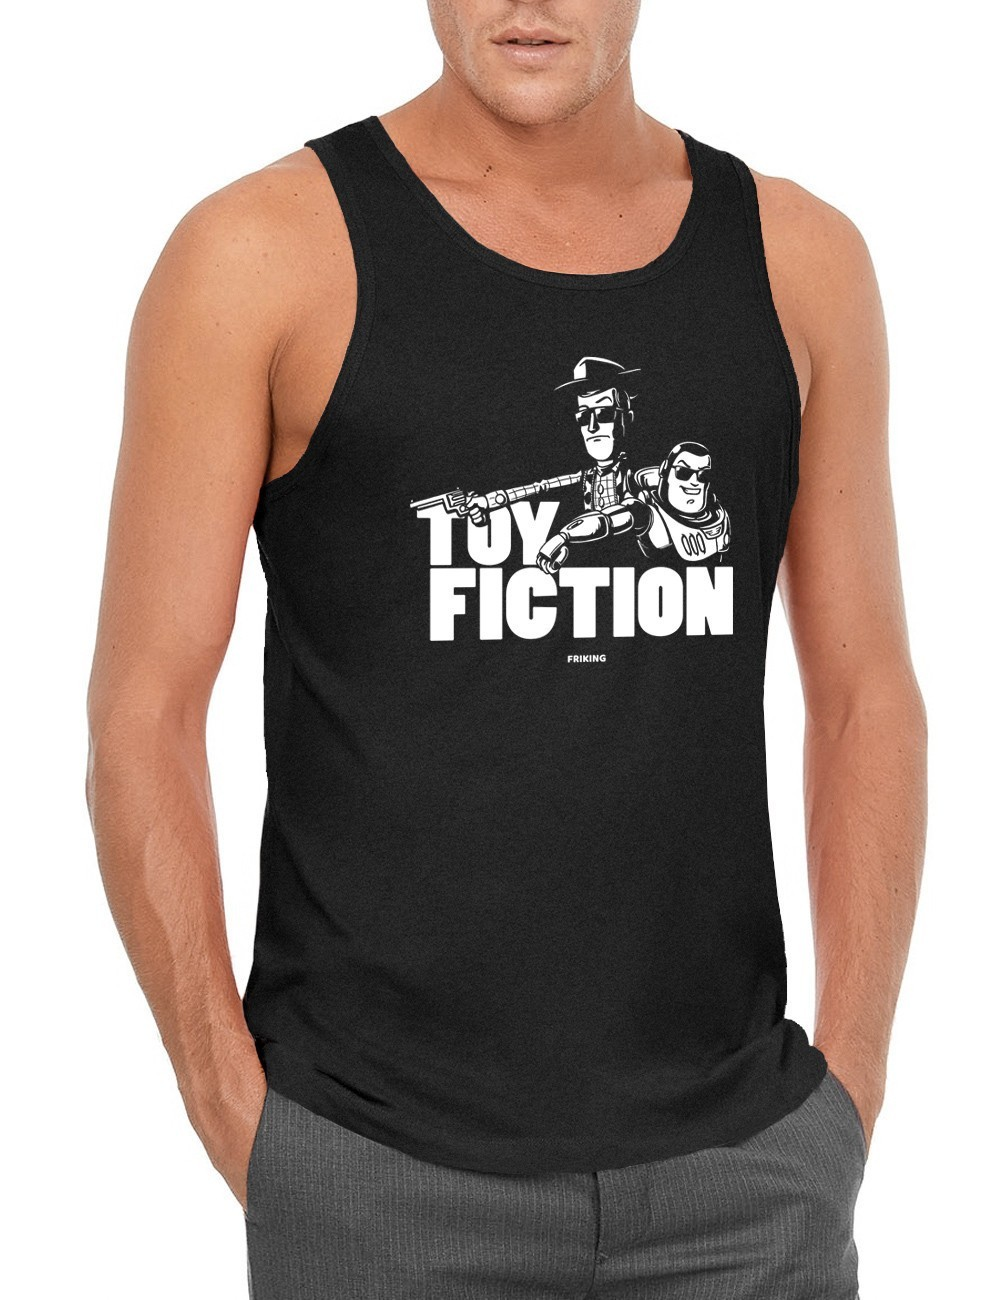 Toy Fiction